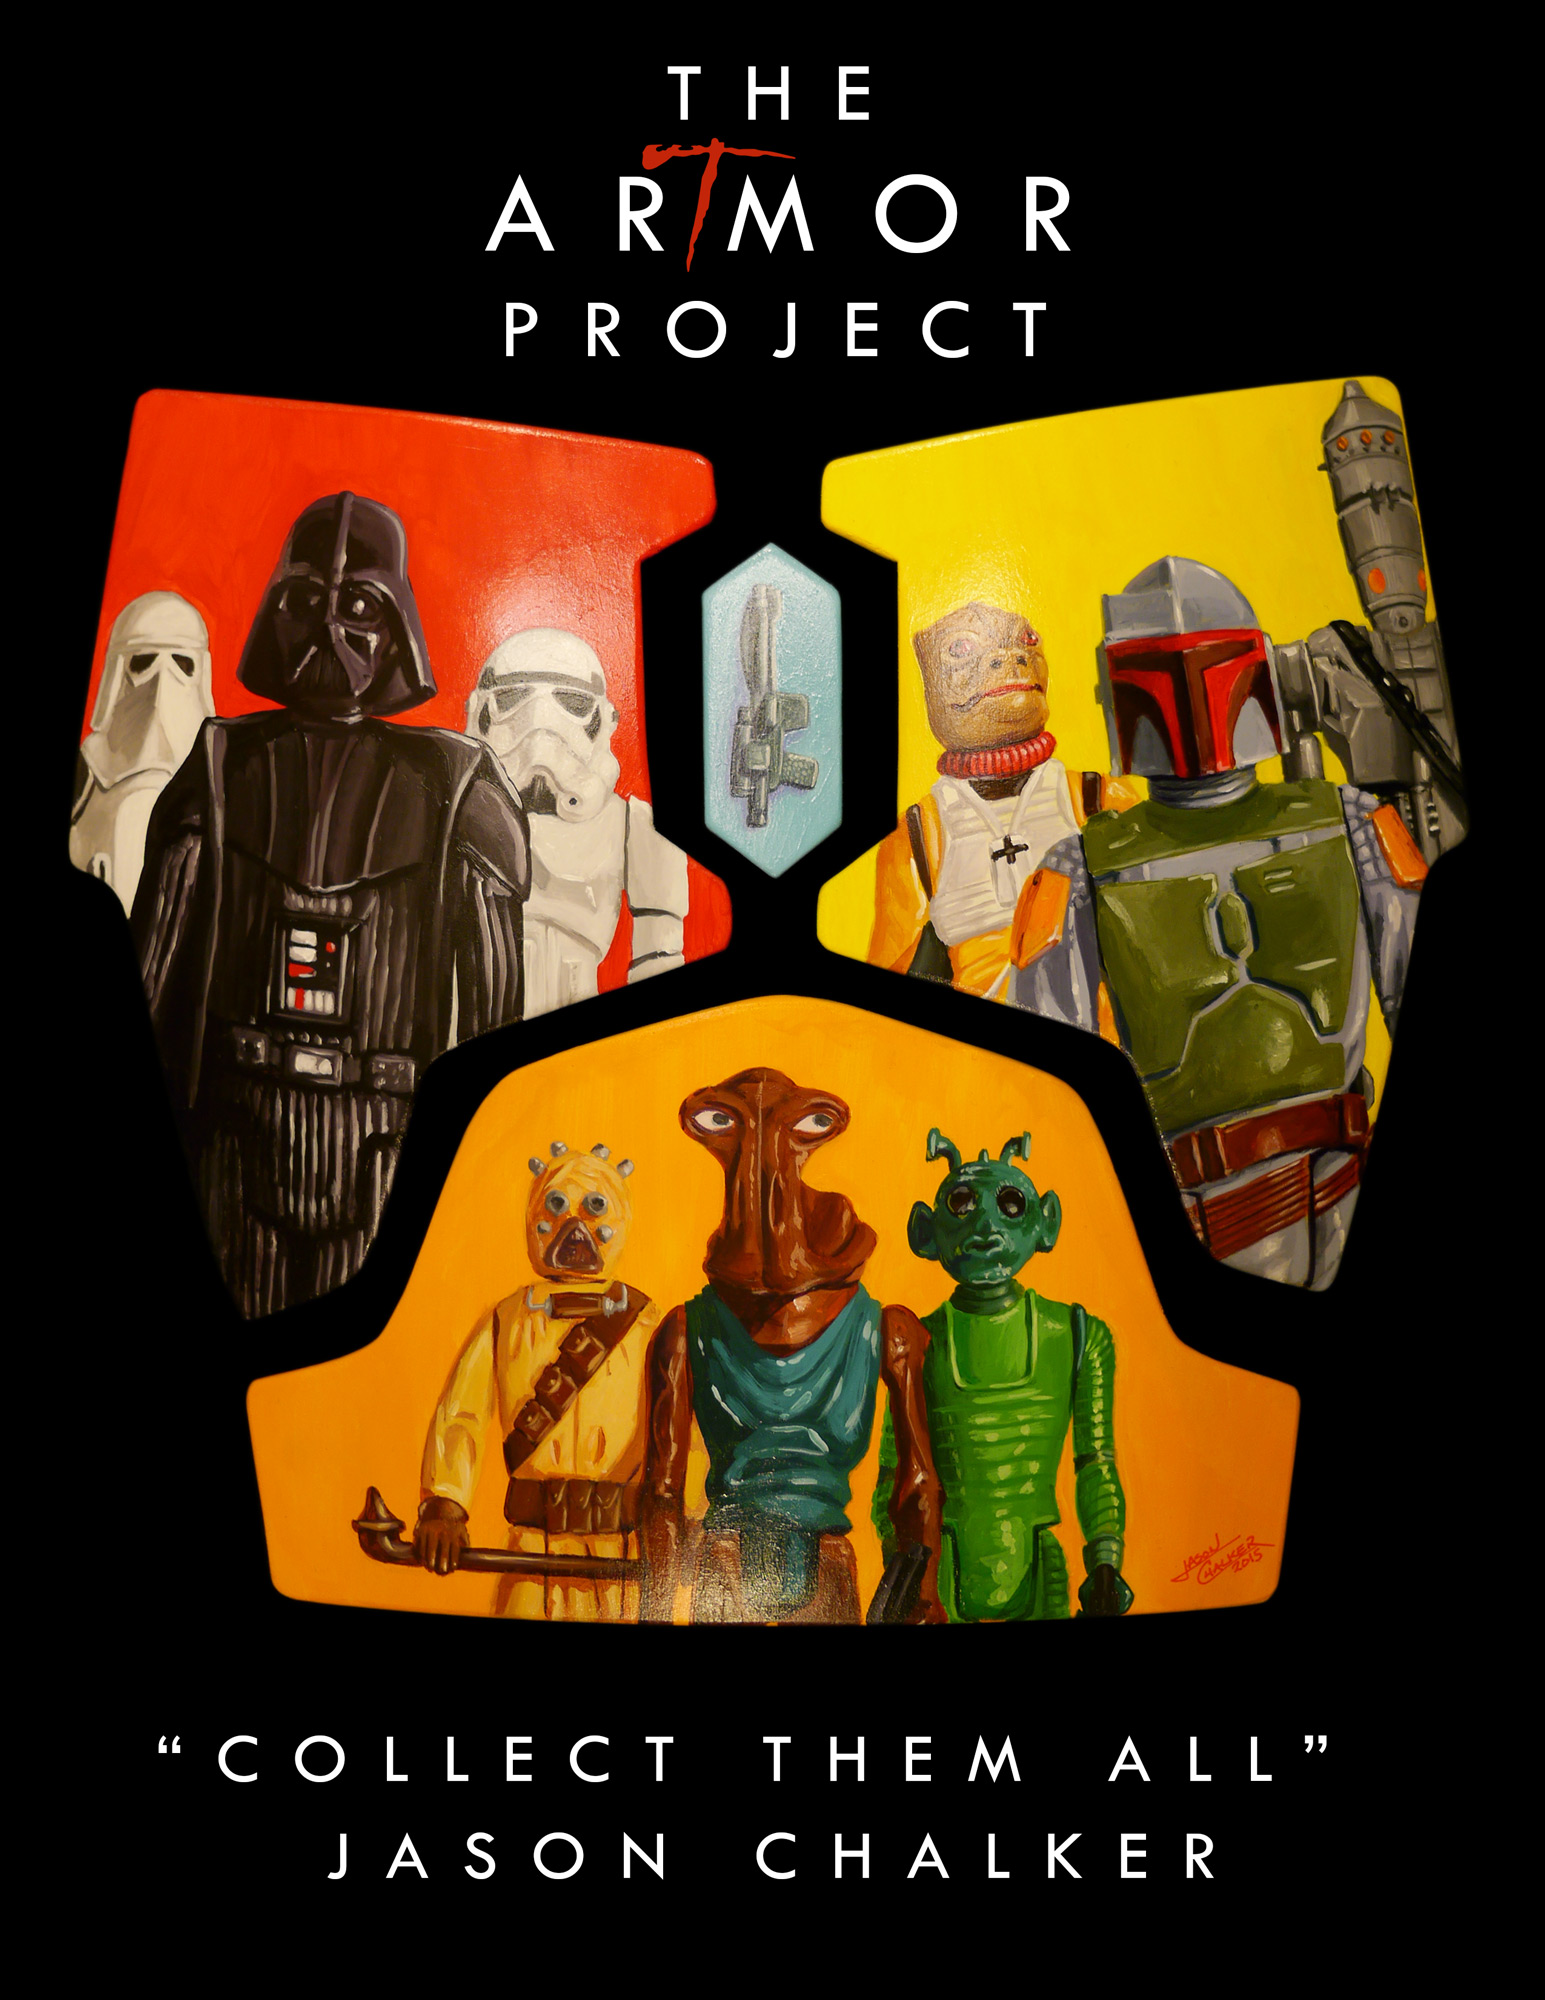 ArTmor 2015: Collect Them All